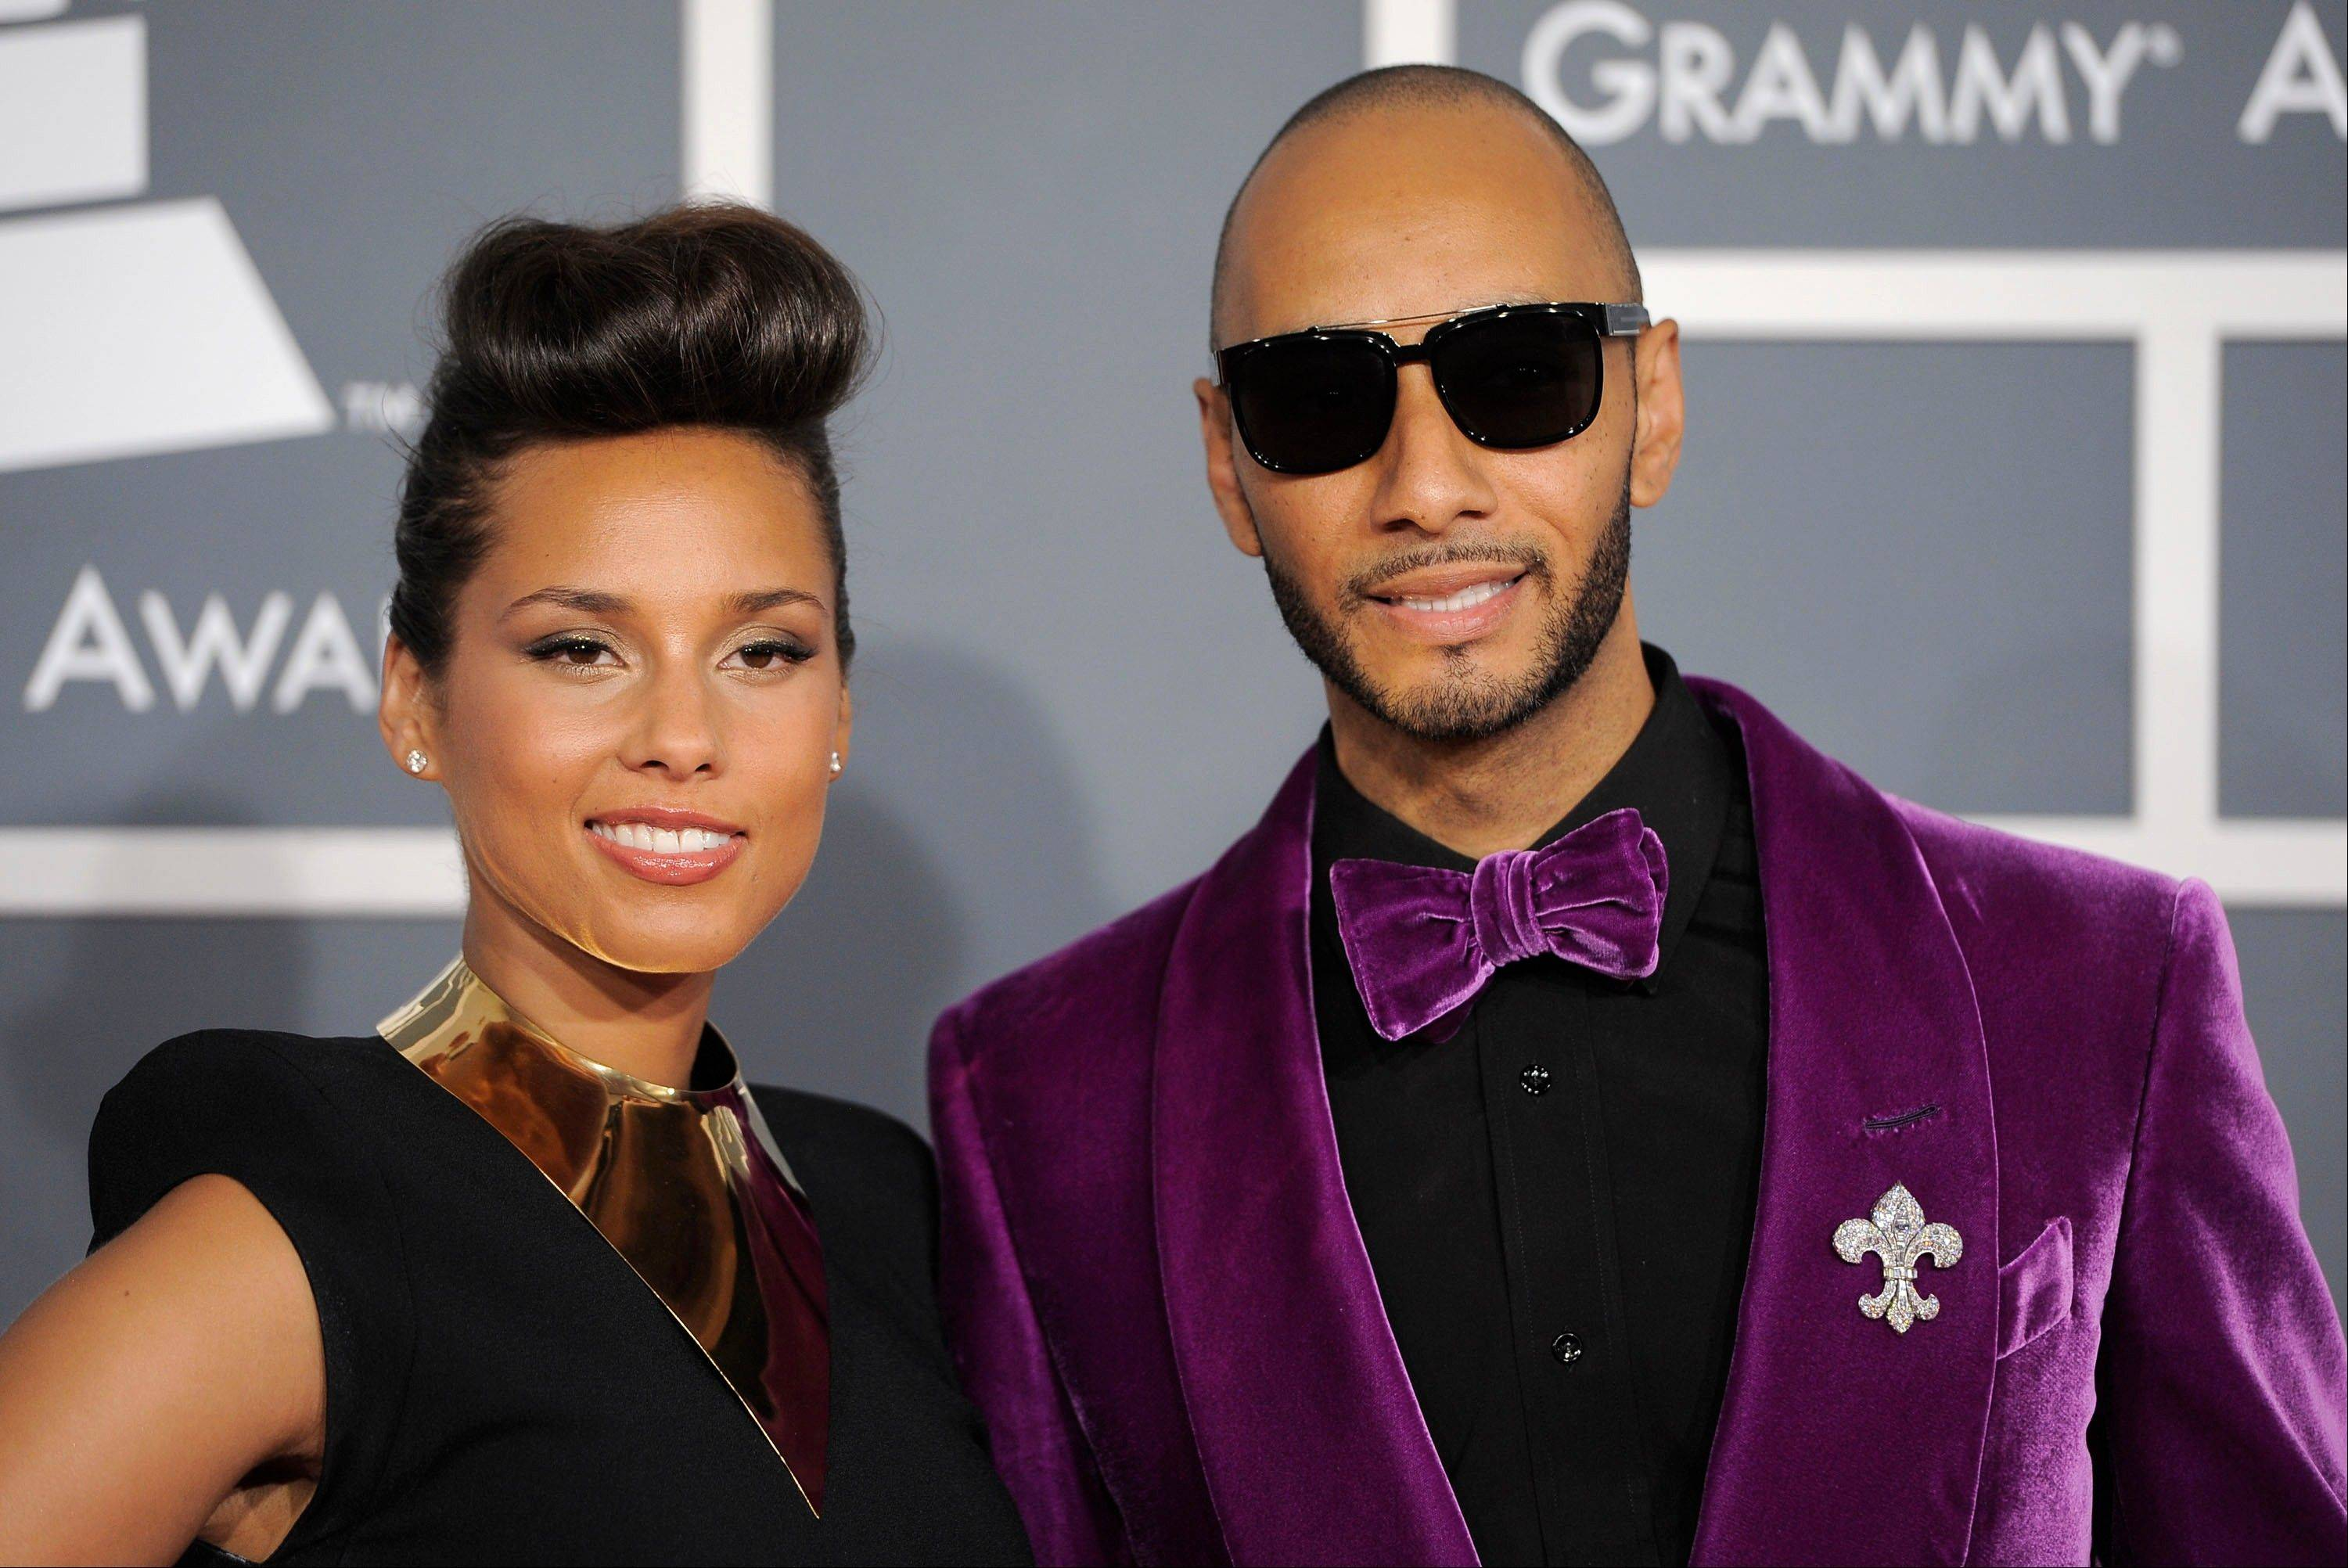 Alicia Keys, left, and Swizz Beatz arrive Sunday at the 54th annual Grammy Awards in Los Angeles.